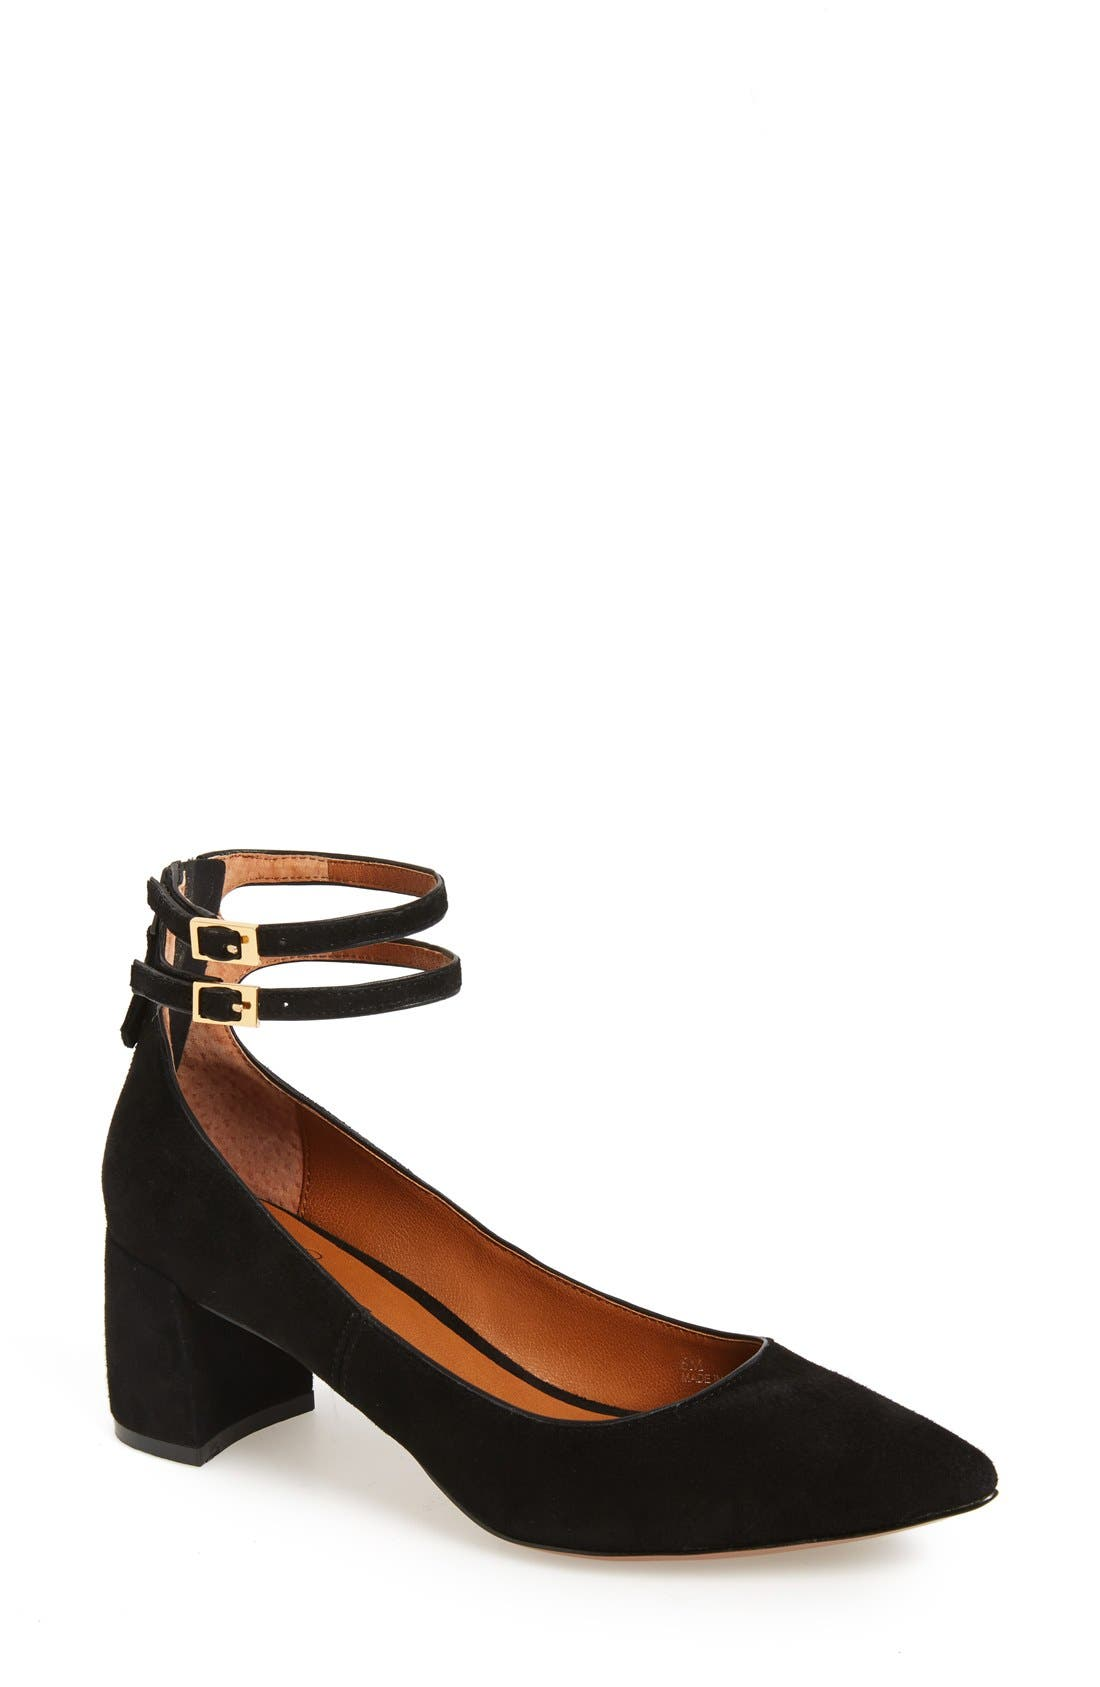 LINEA PAOLO Noel Pointy Toe Ankle Strap Pump